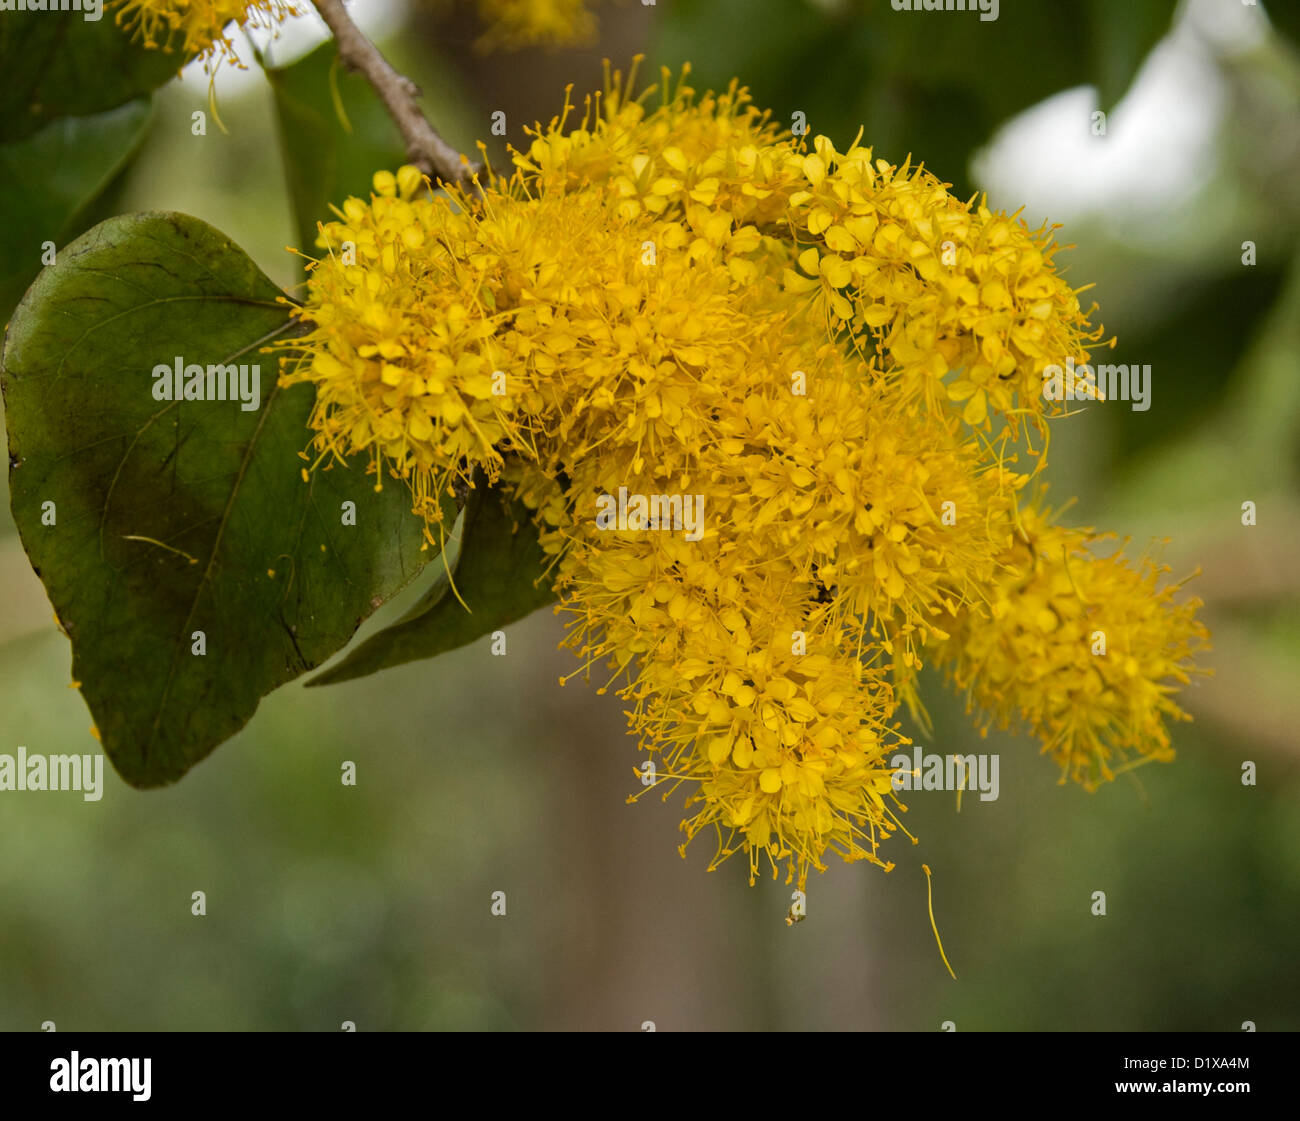 Cluster Of Golden Yellow Flowers Green Heart Shaped Leaves Of